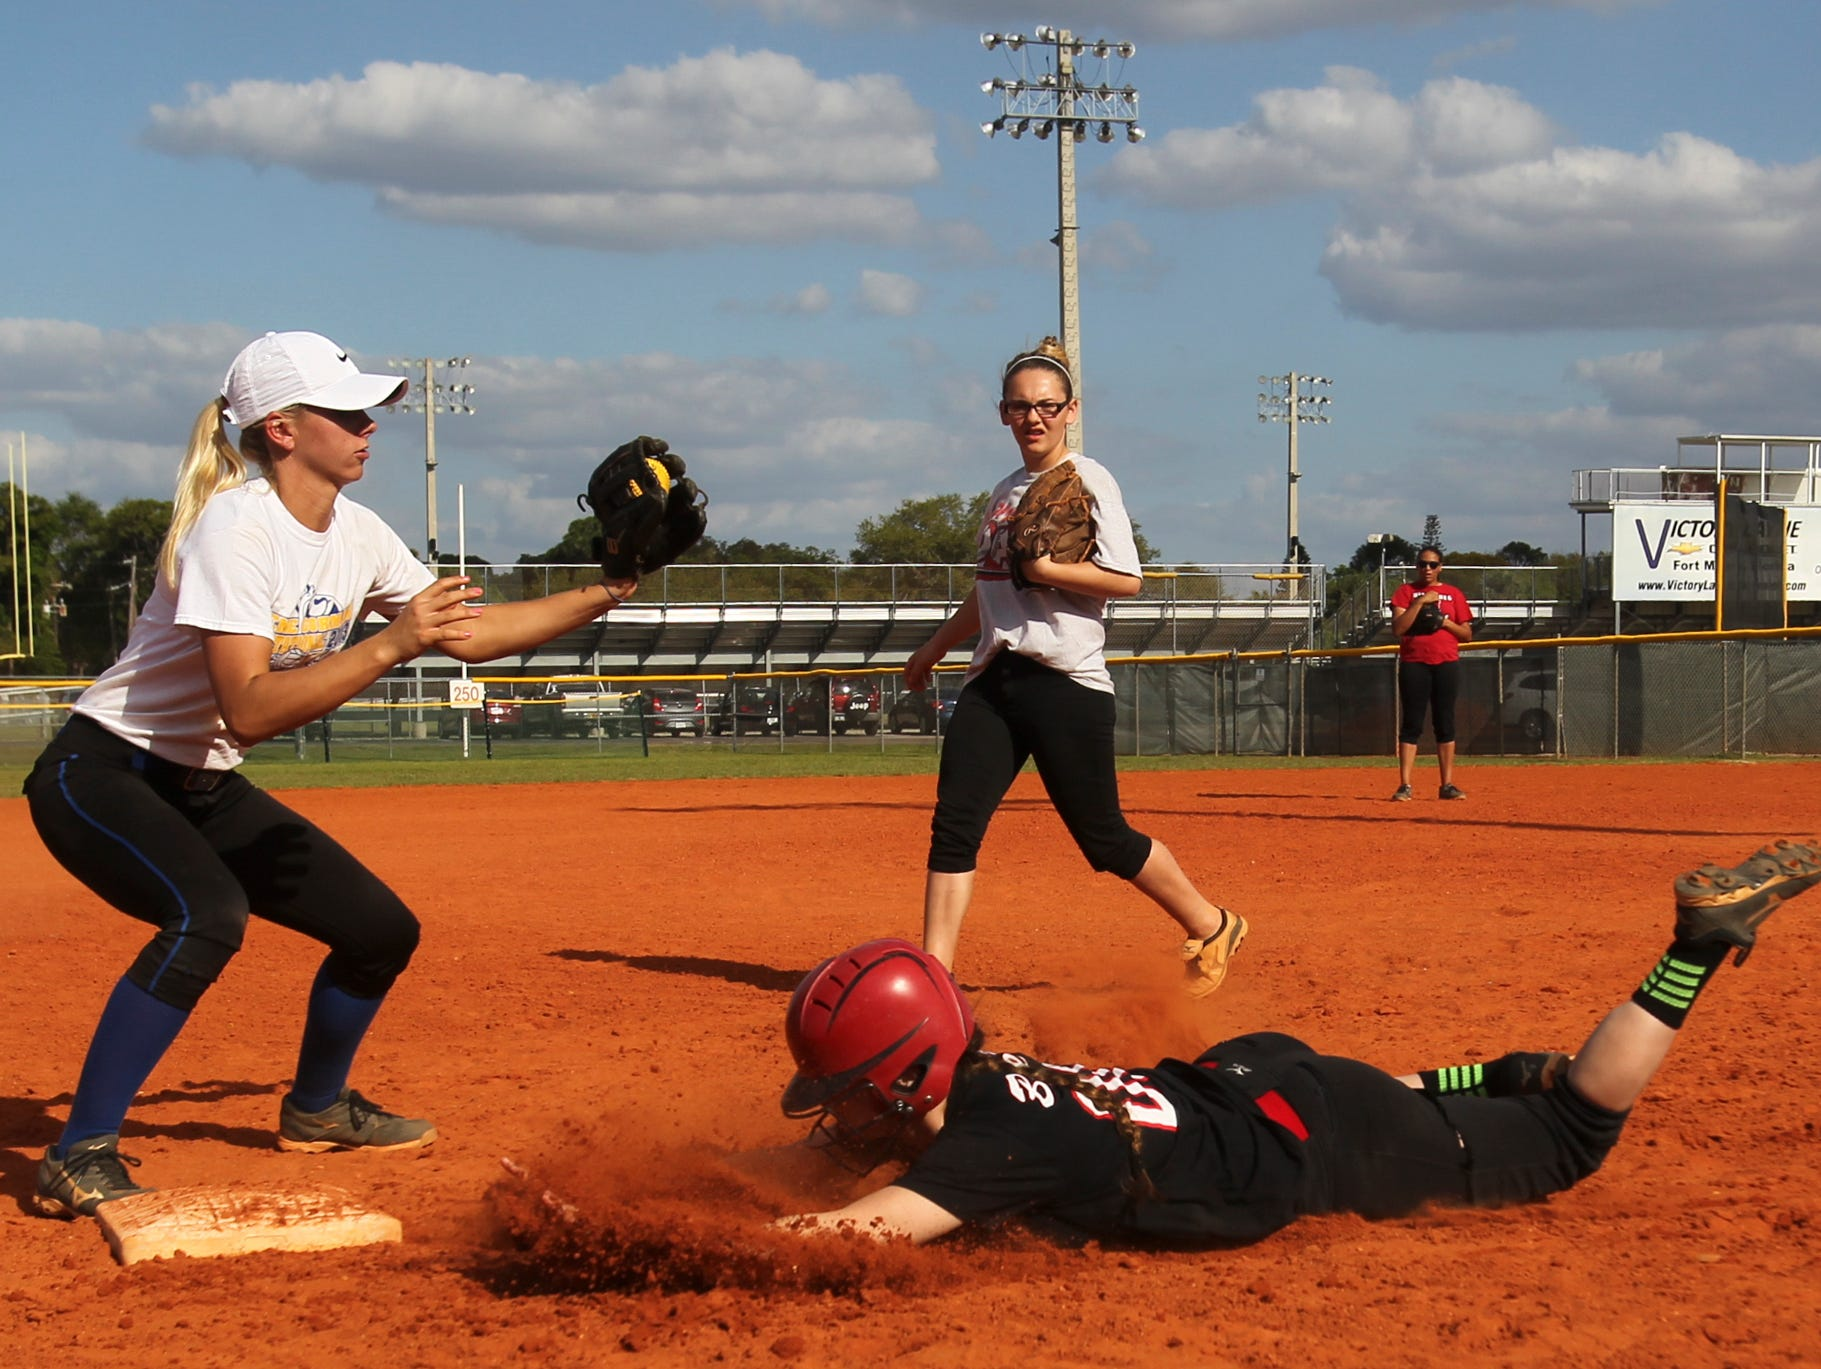 Jessie Valerius catches the ball while runner Summer Ackerson is safe after a rundown attempt during softball practice in North Fort Myers Wednesday.